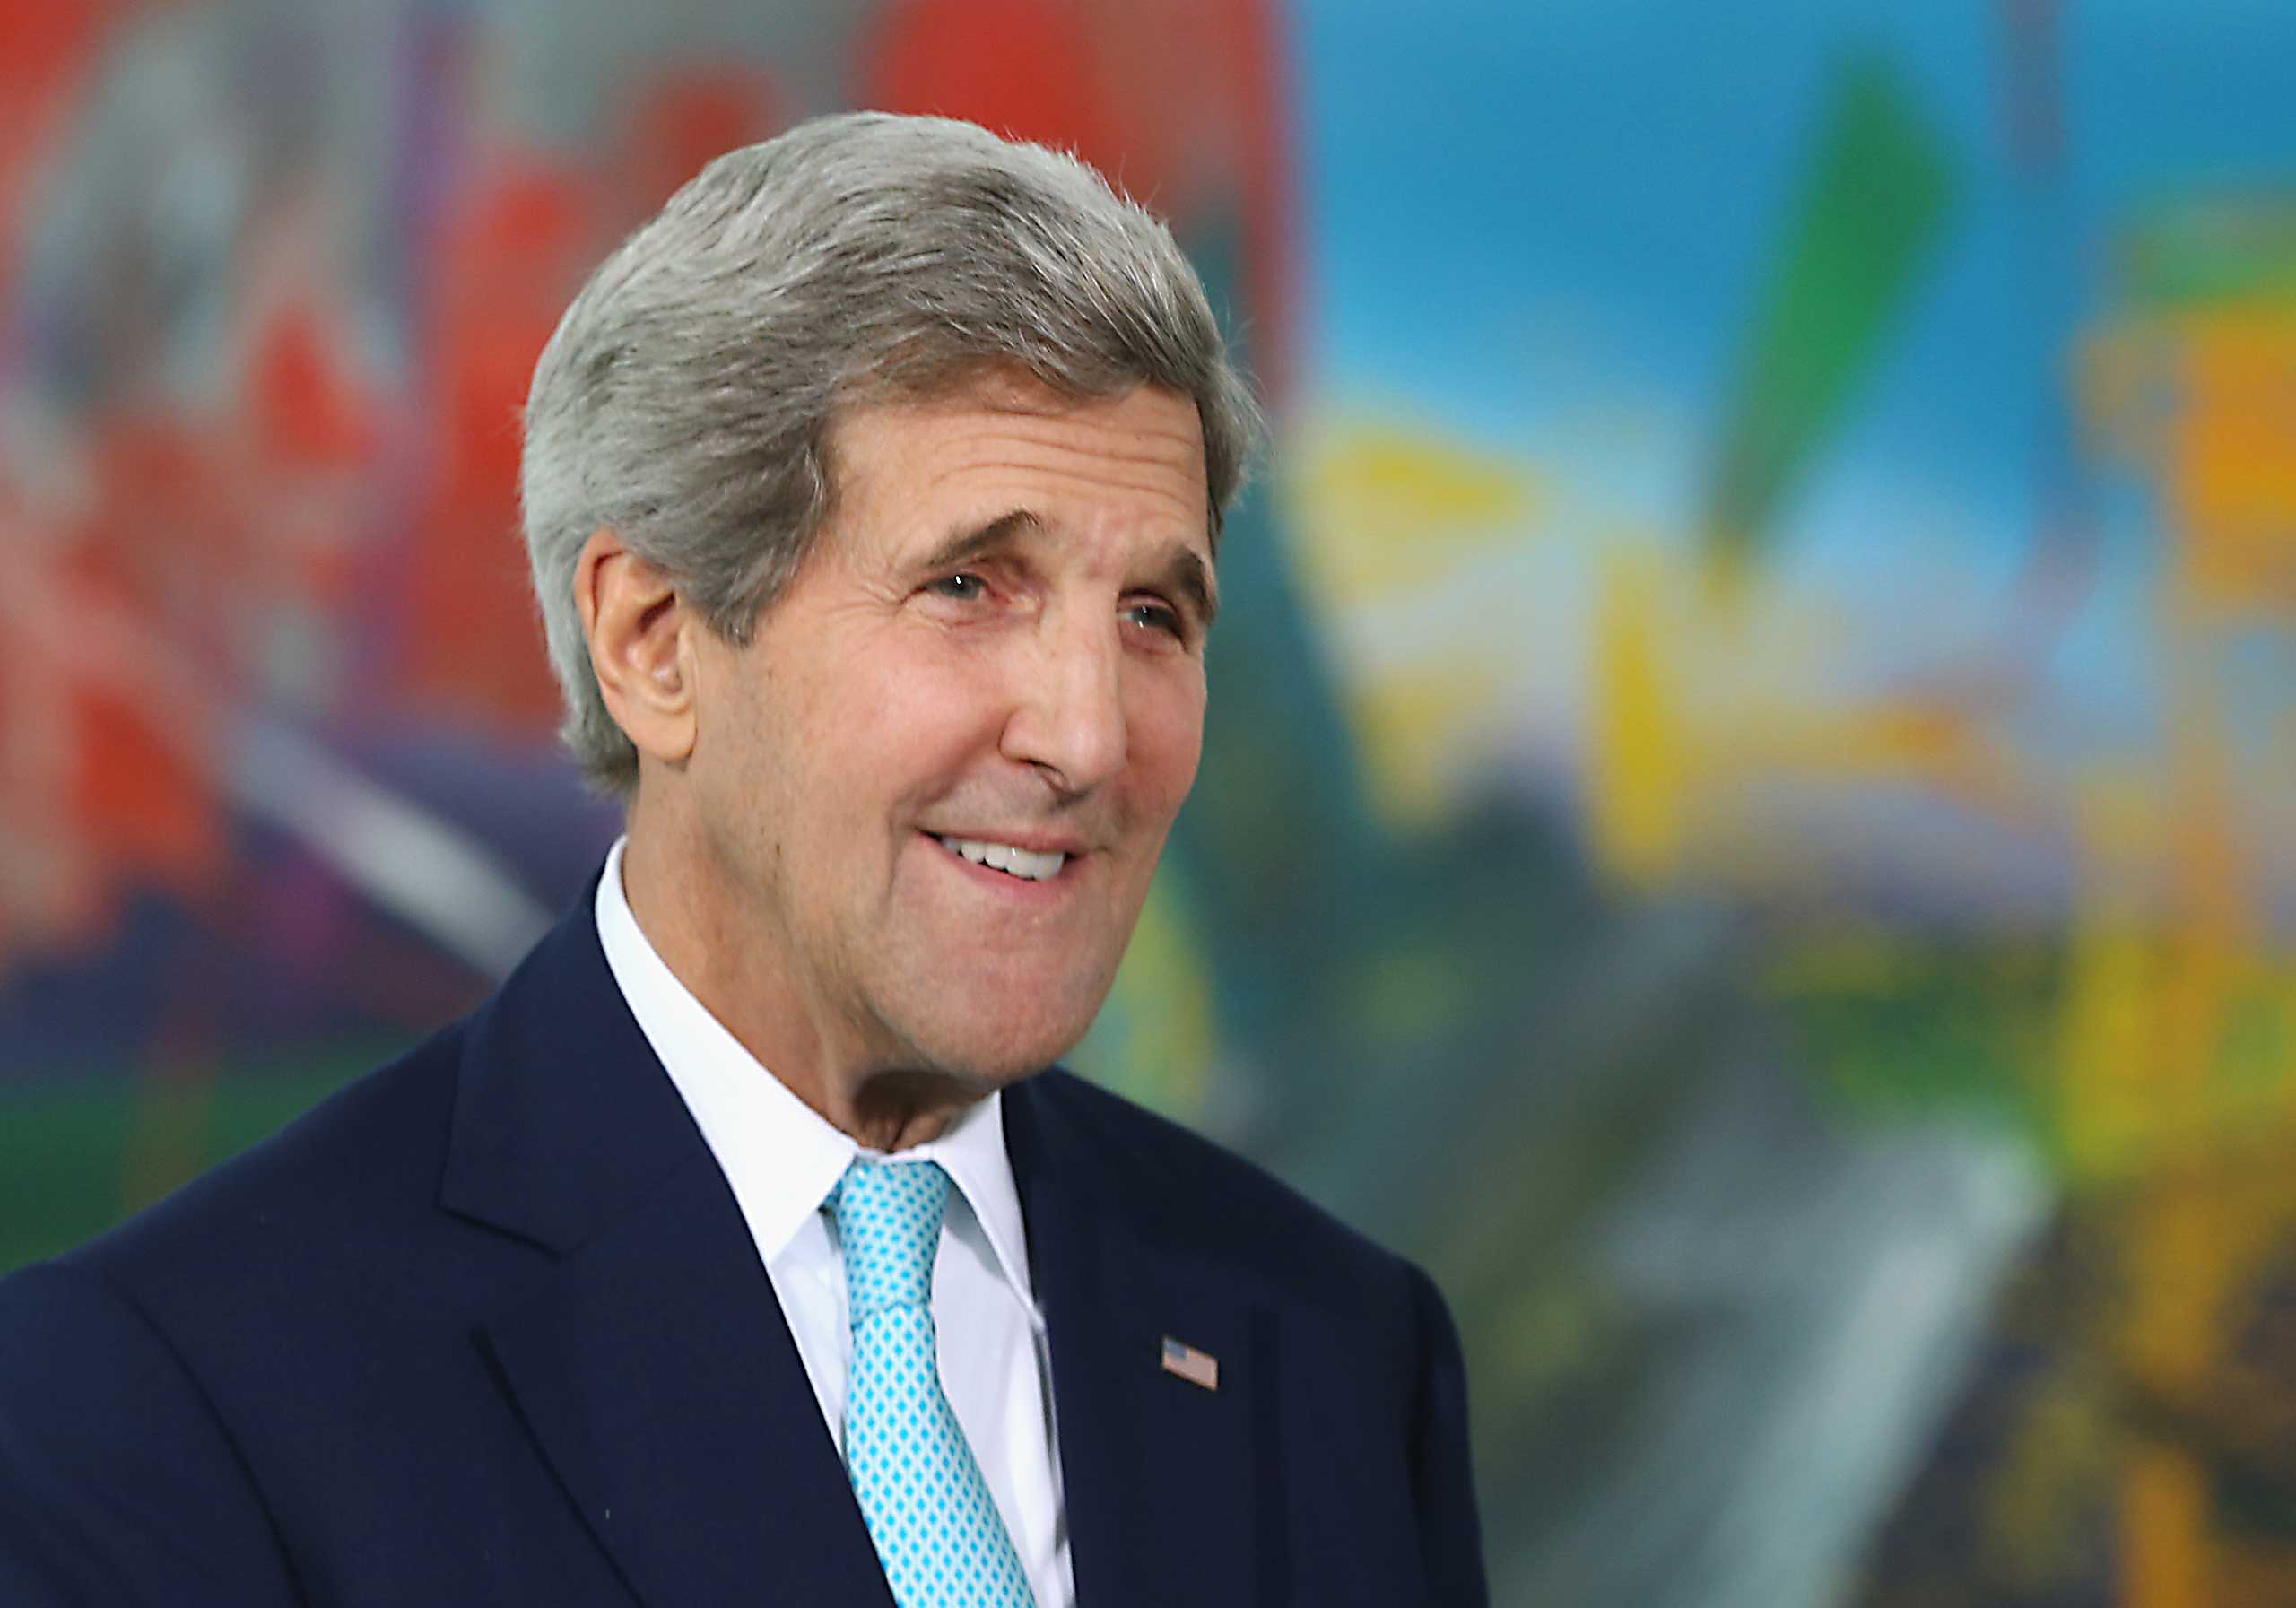 U.S. Secretary of State John Kerry at the Chancellery in Berlin on Oct. 22, 2014.